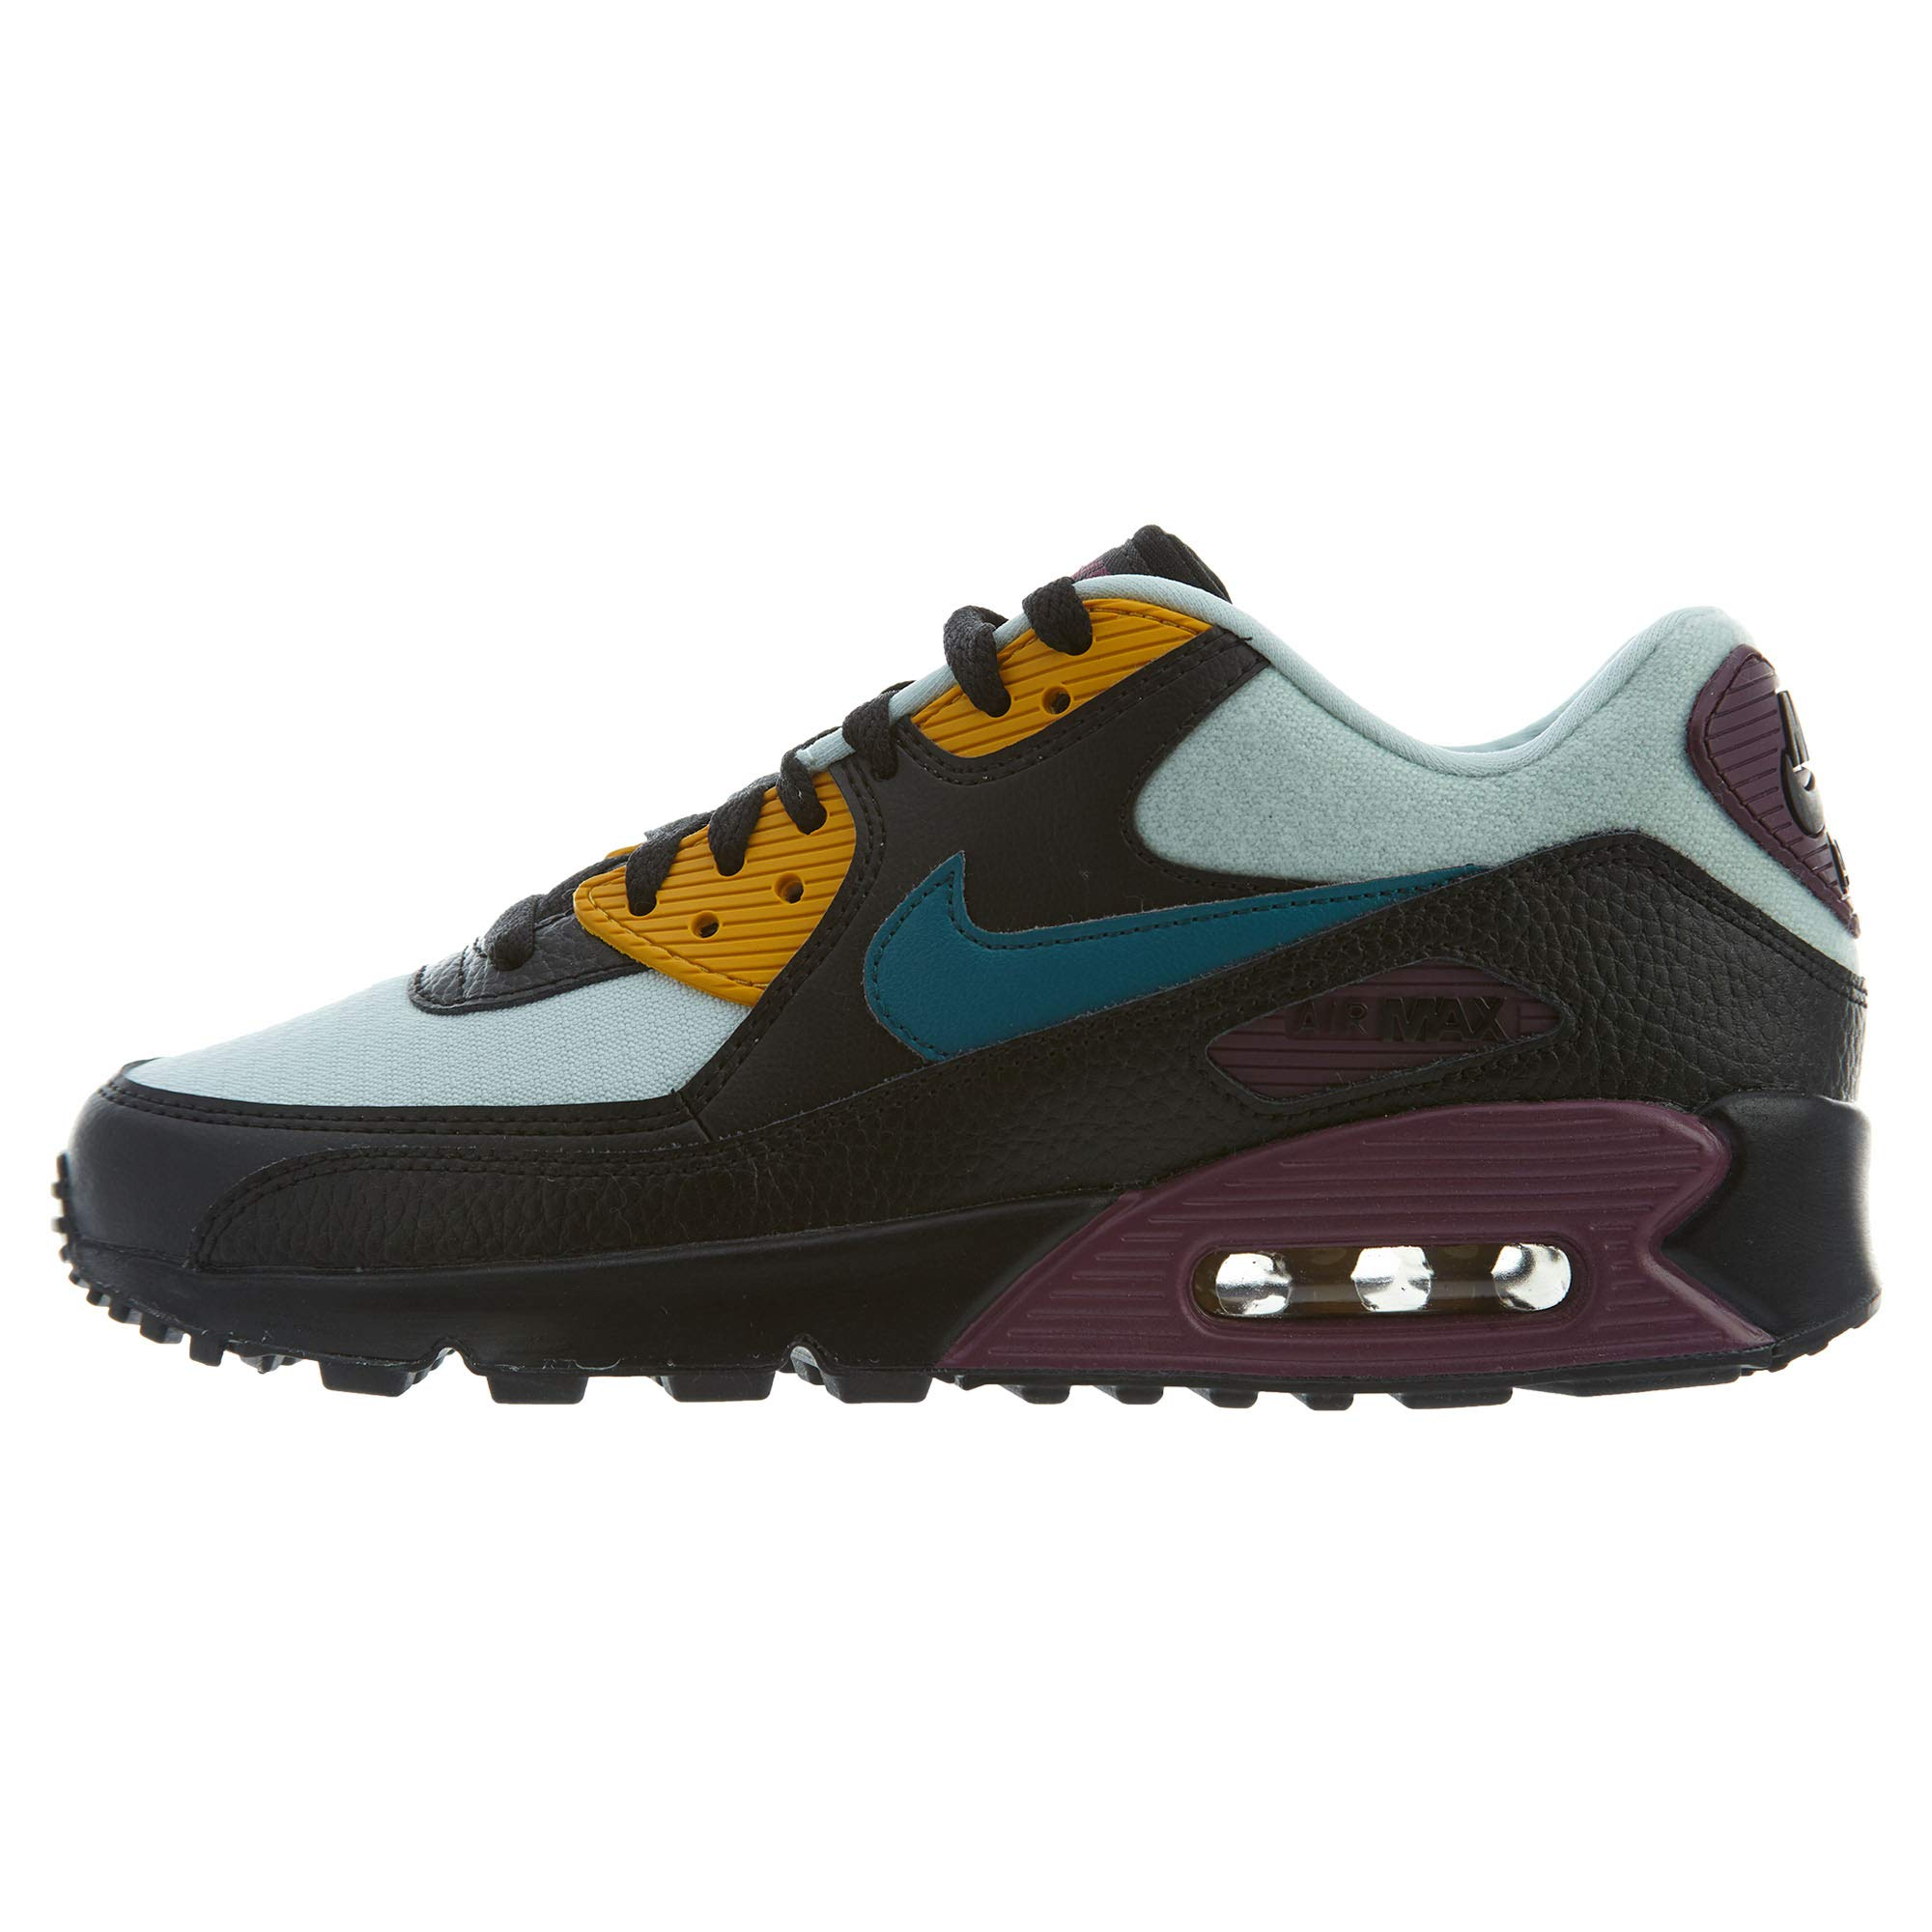 detailed look 9a0e5 bd304 Galleon - NIKE Women s Air Max 90 Light Silver Geode Teal Black Running  Shoe 10 Women US